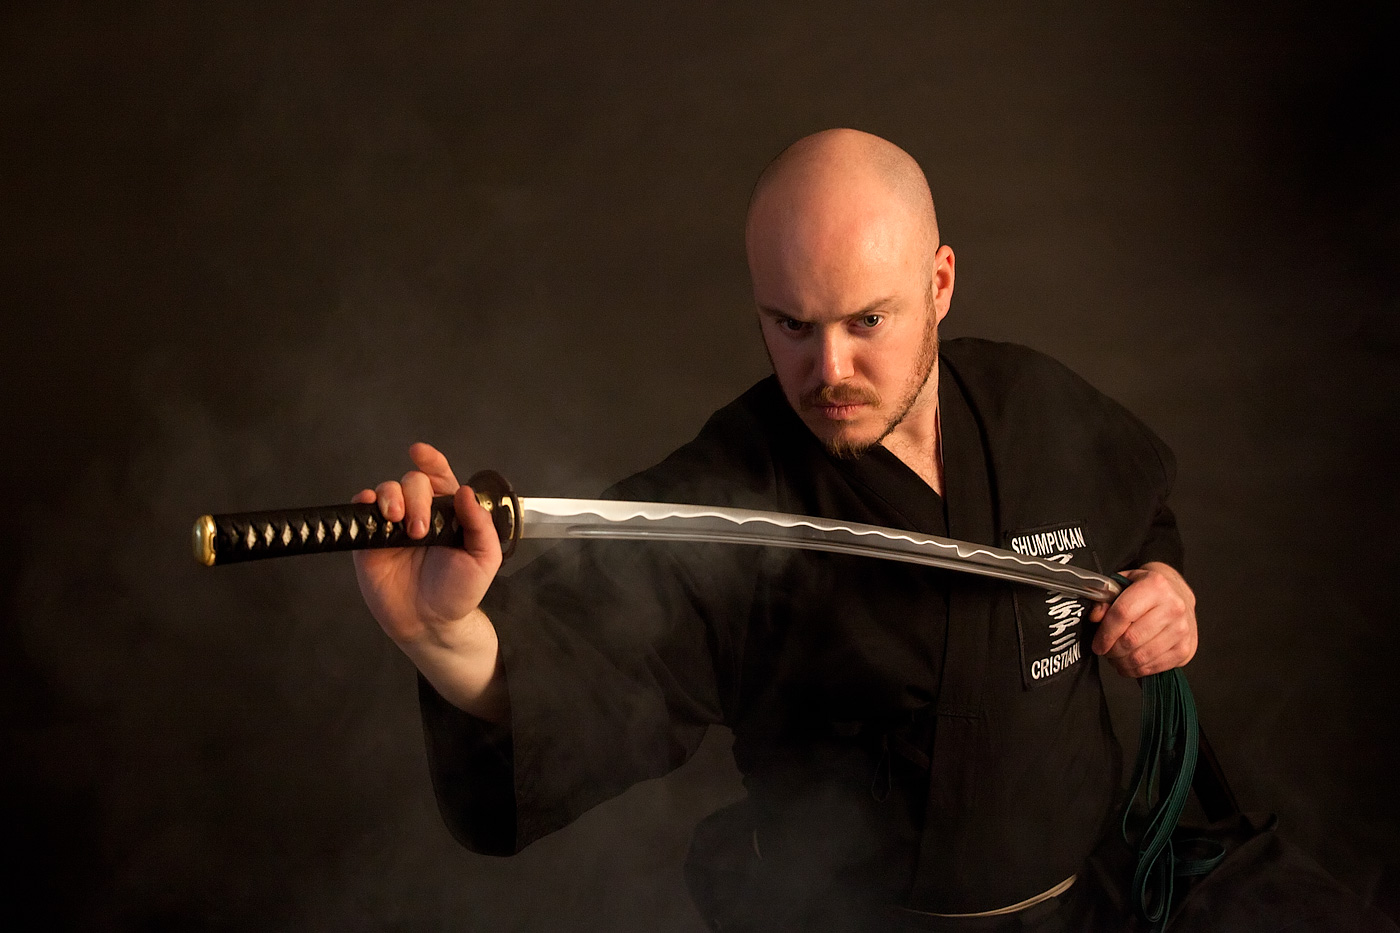 <div class='foto_id' style='display:none'>8</div>Katana ©